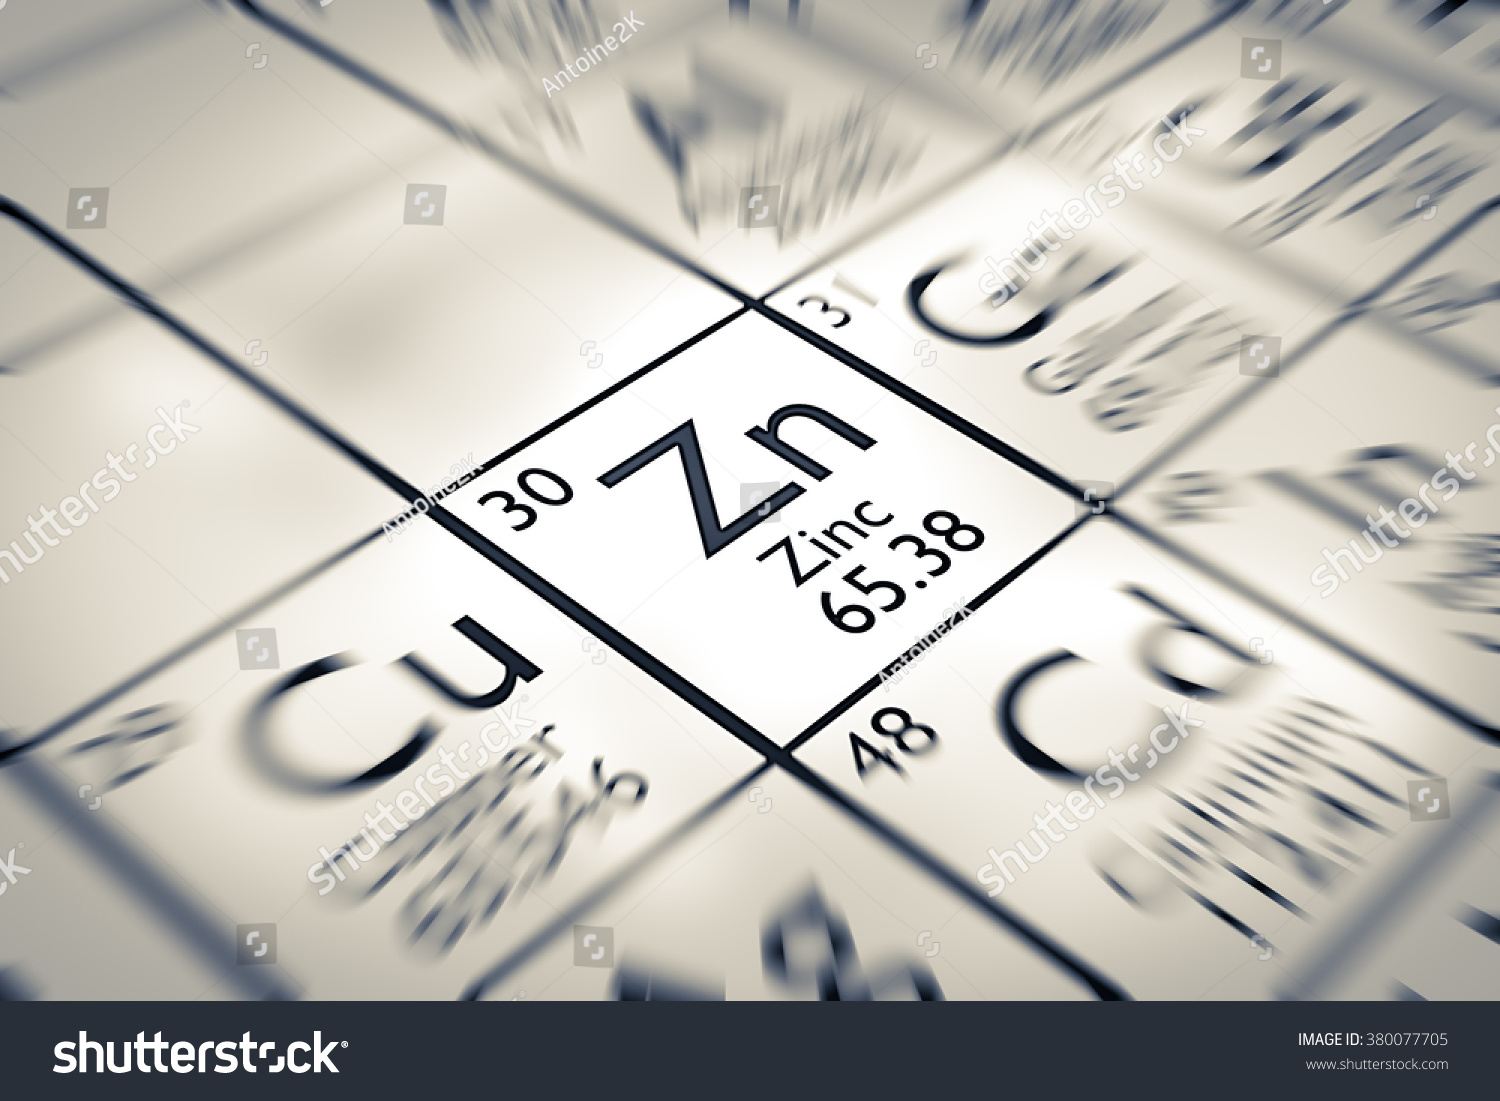 focus on zinc chemical element from the mendeleev periodic table - Mendeleev Periodic Table Atomic Number